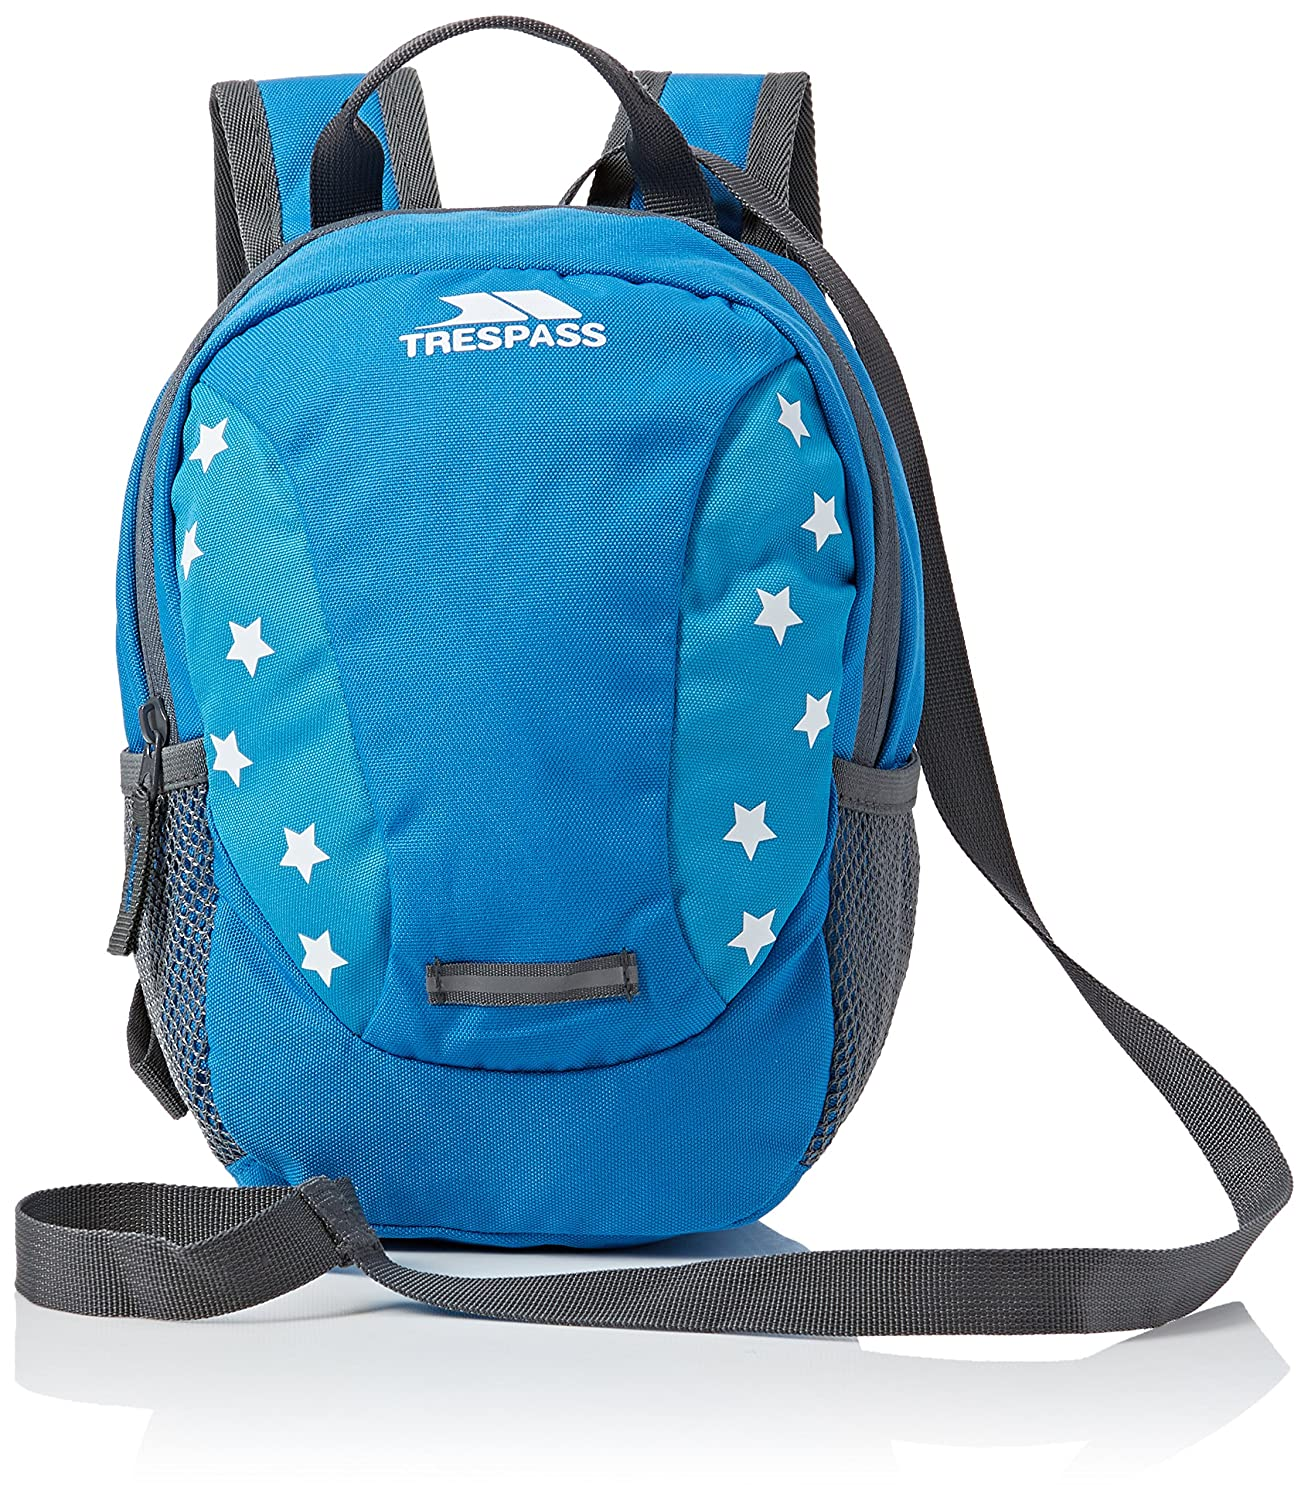 Tiddler Boys & Girls Toddlers Safety Rein Small Cute Nursery Backpack Trespass UCACBAL30002_BLUEACH